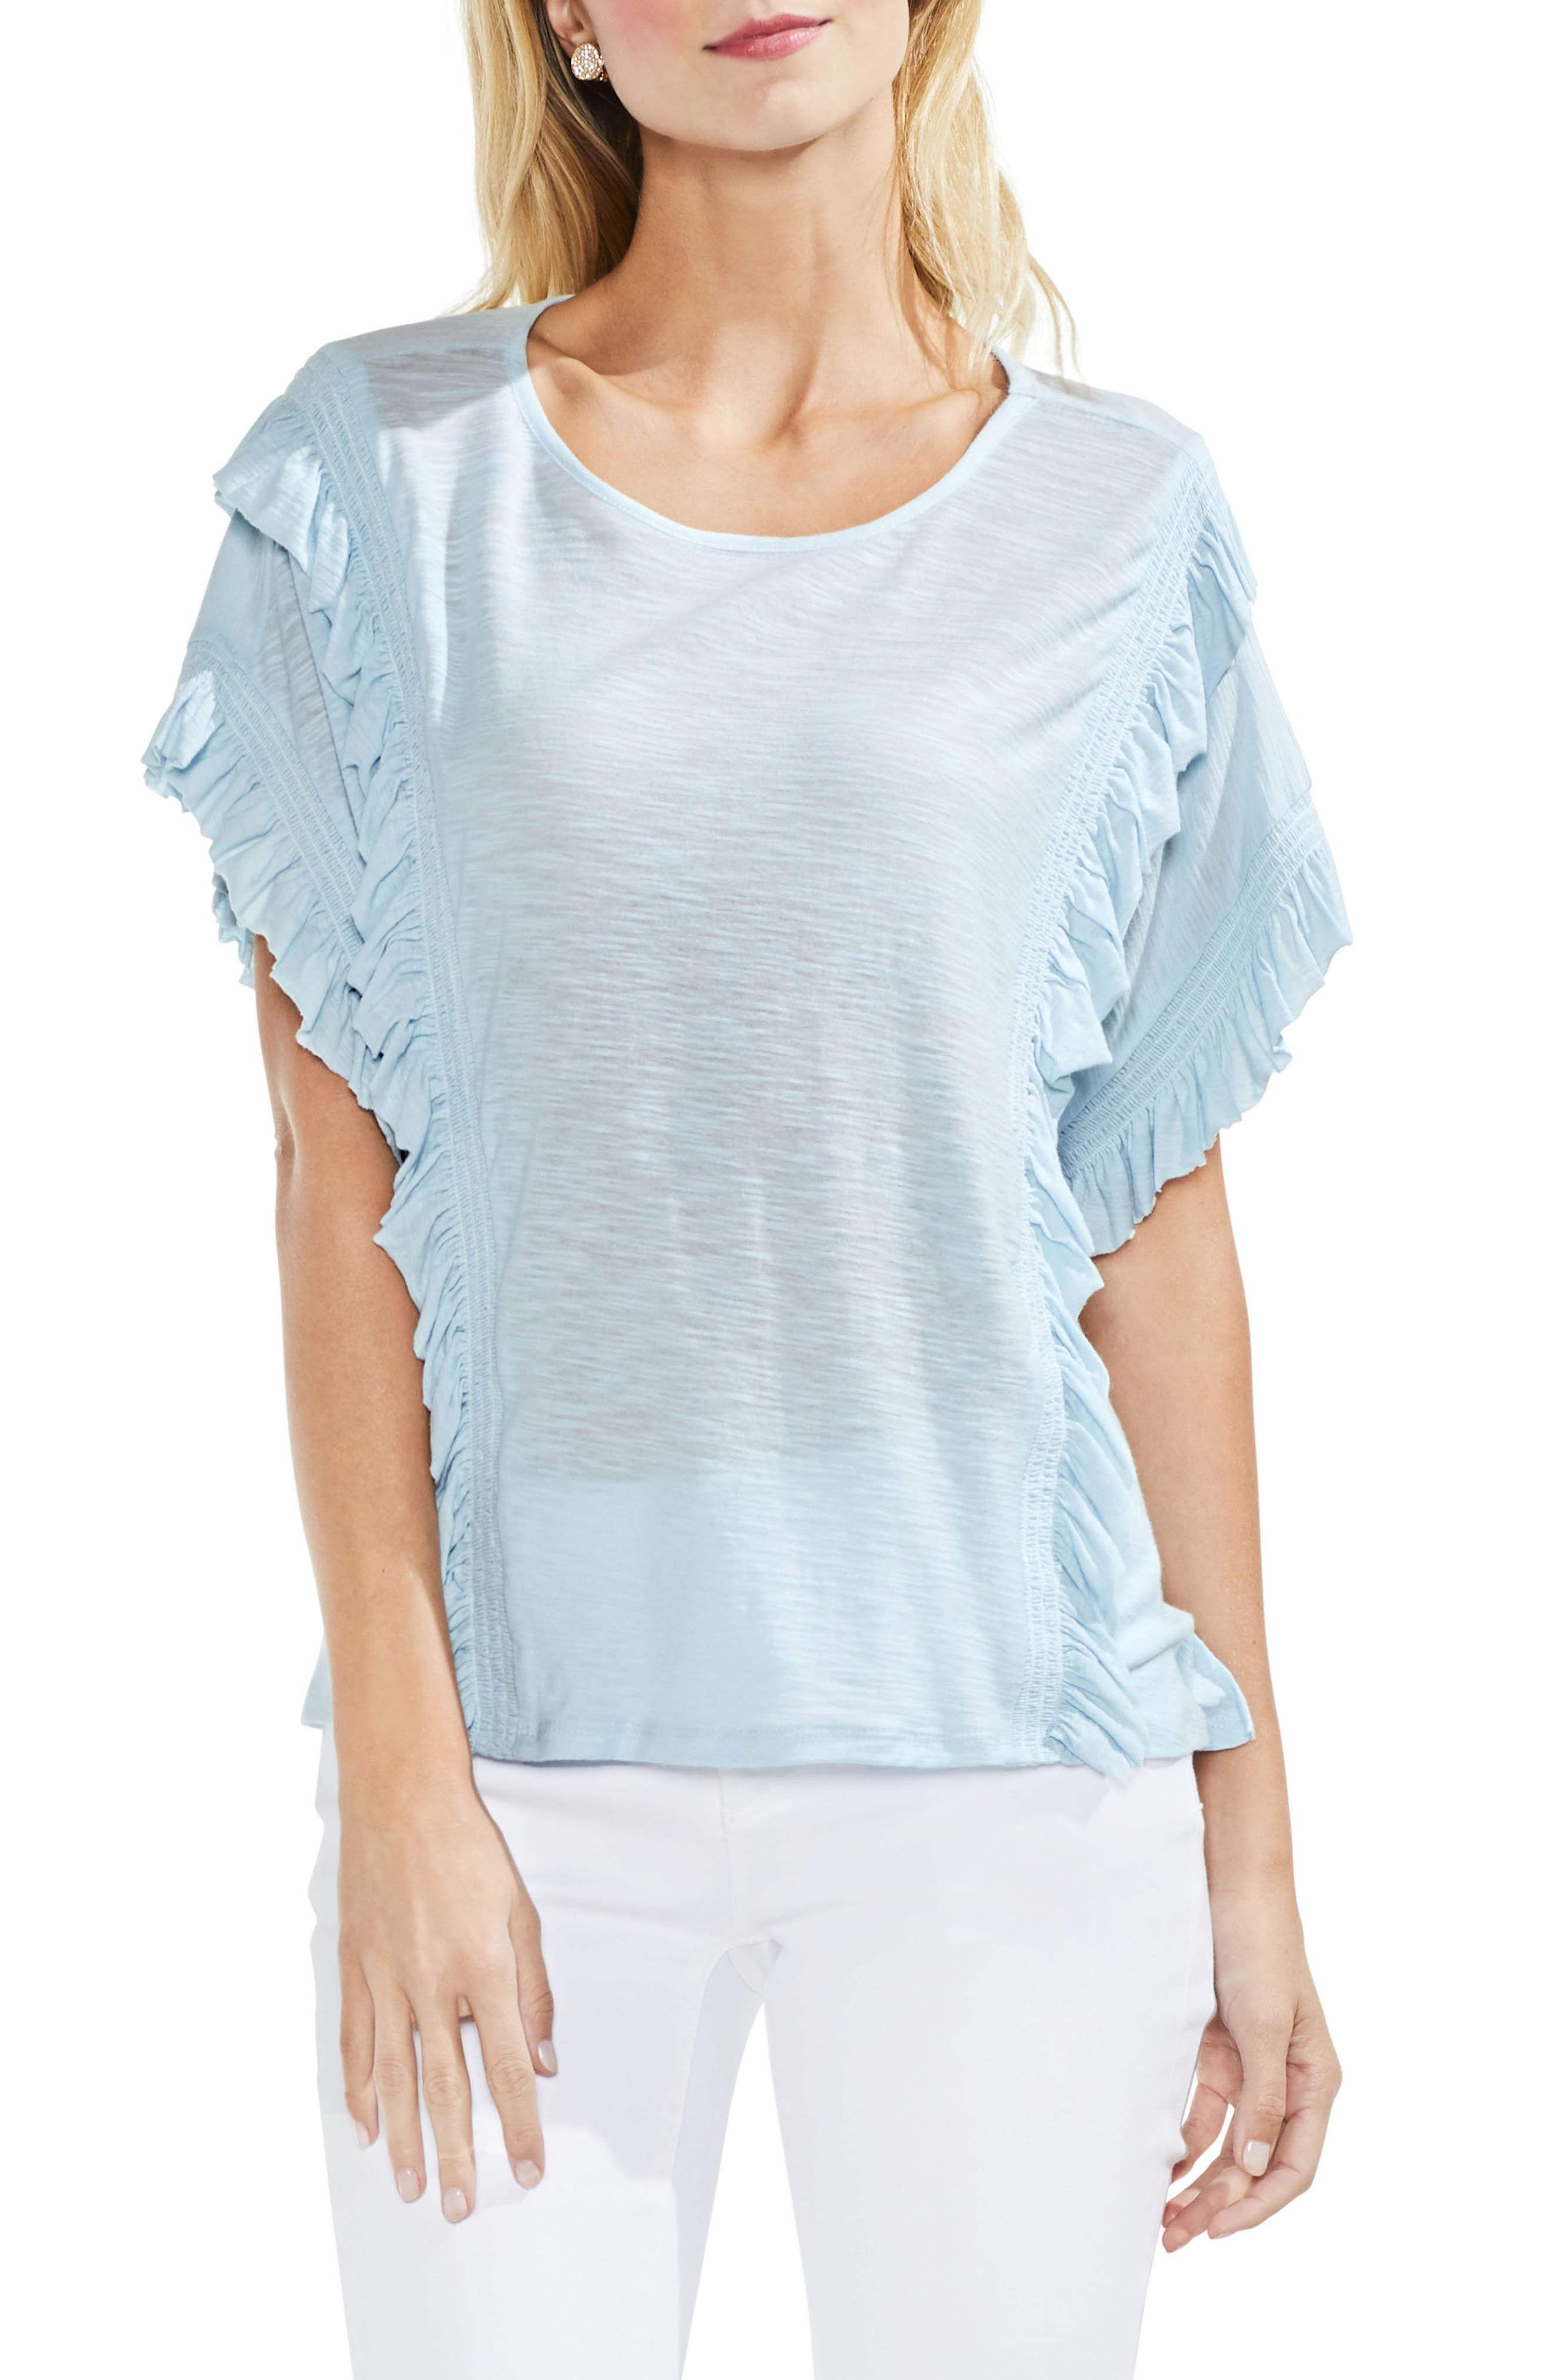 Vince Camuto Ruffle Front Top (Regular and Petite)